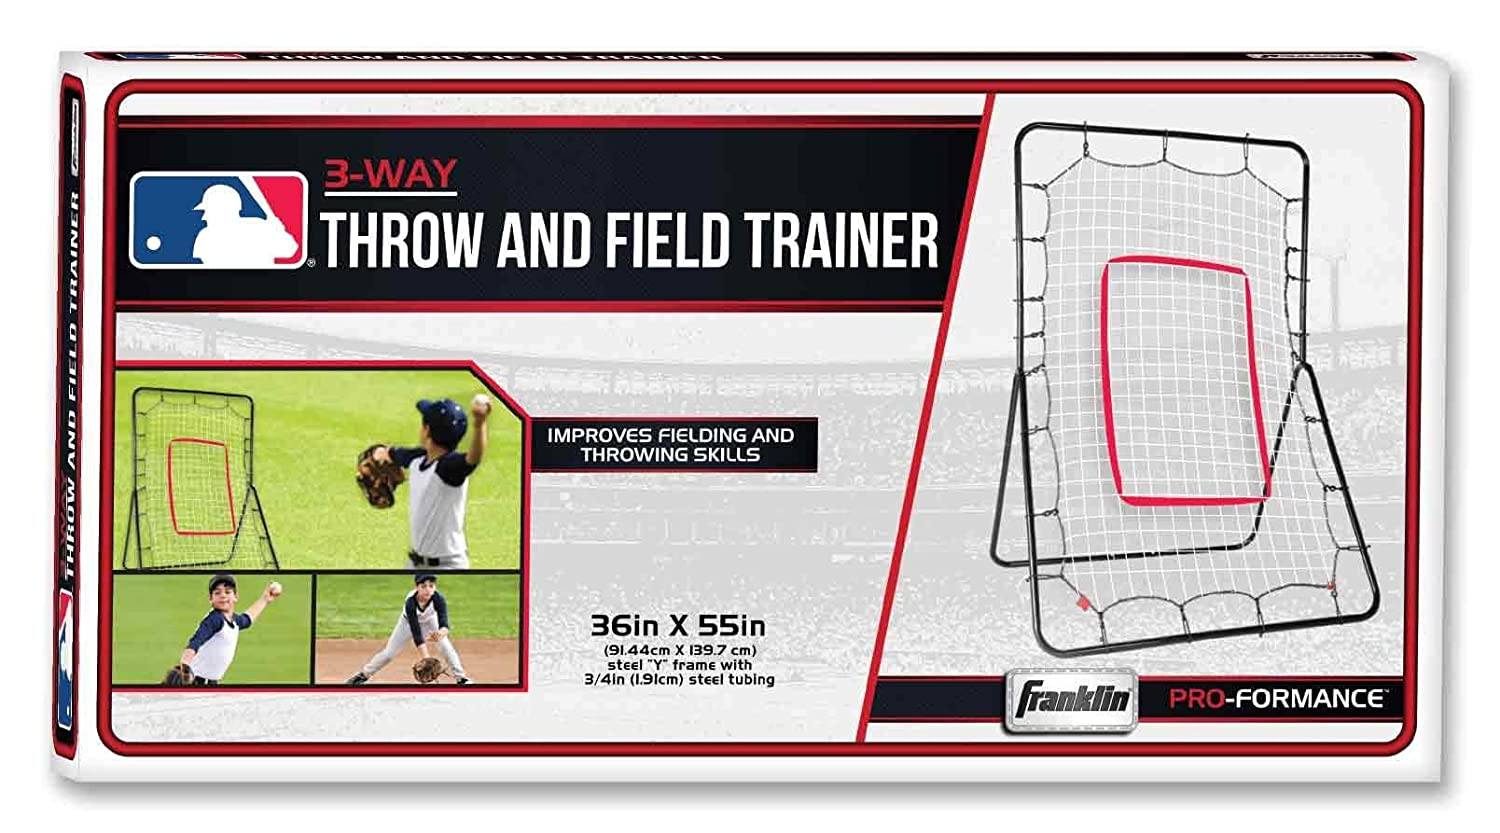 Franklin Sports Baseball Pitch Back Fielding and Throwing 55 x 36 Inch Renewed Trainer for Pitching